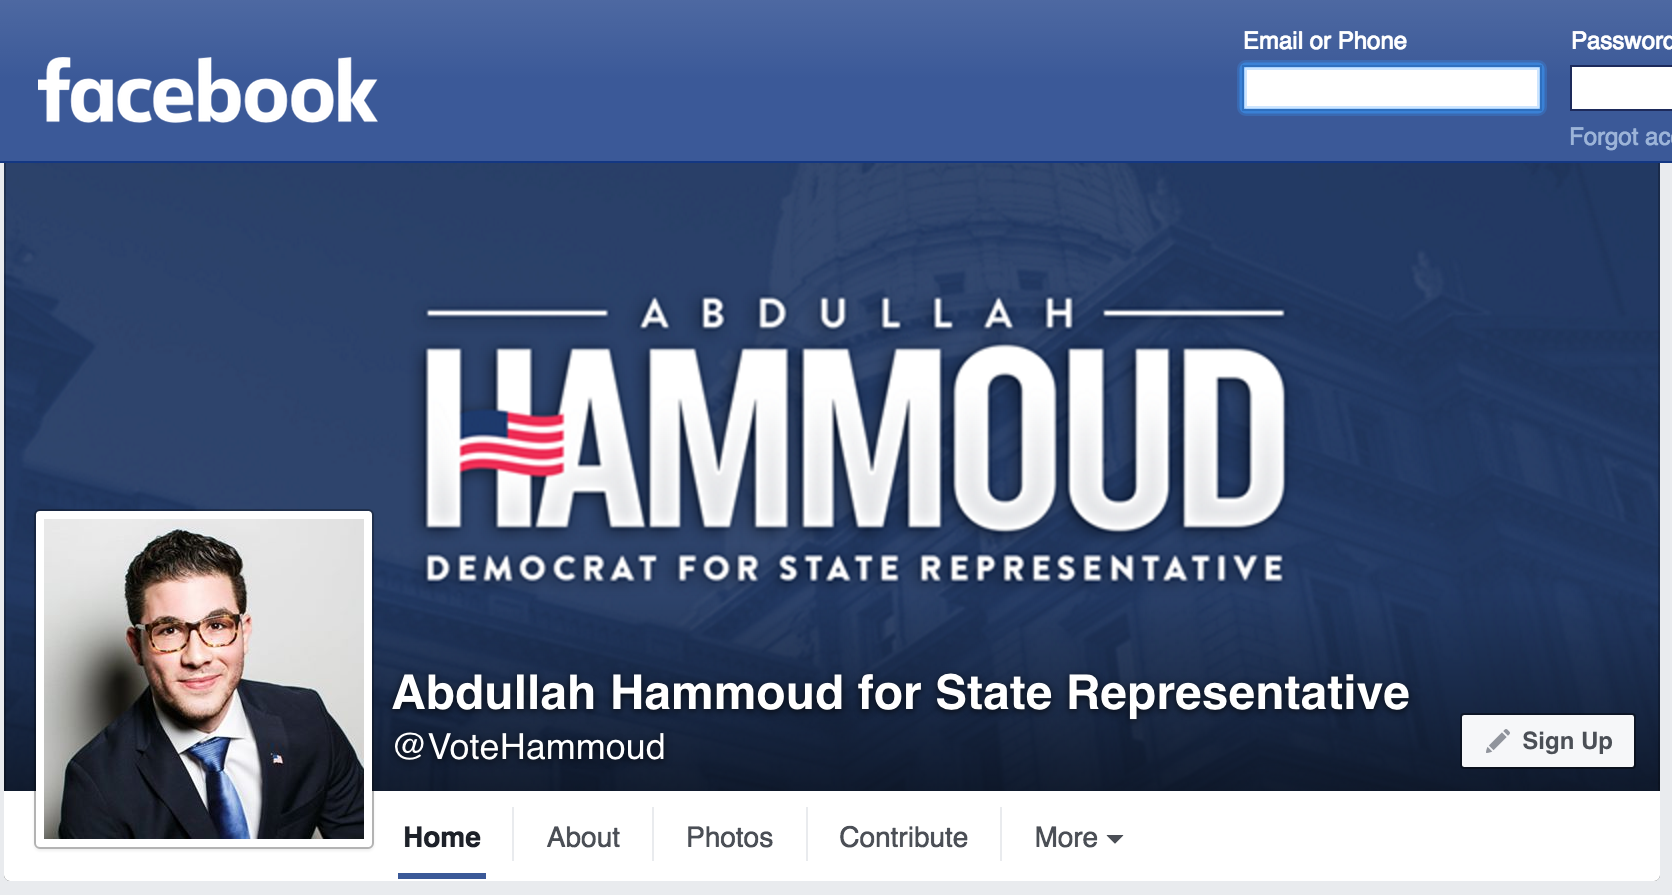 Screenshot of Abdullah Hammoud for State Representative Facebook page